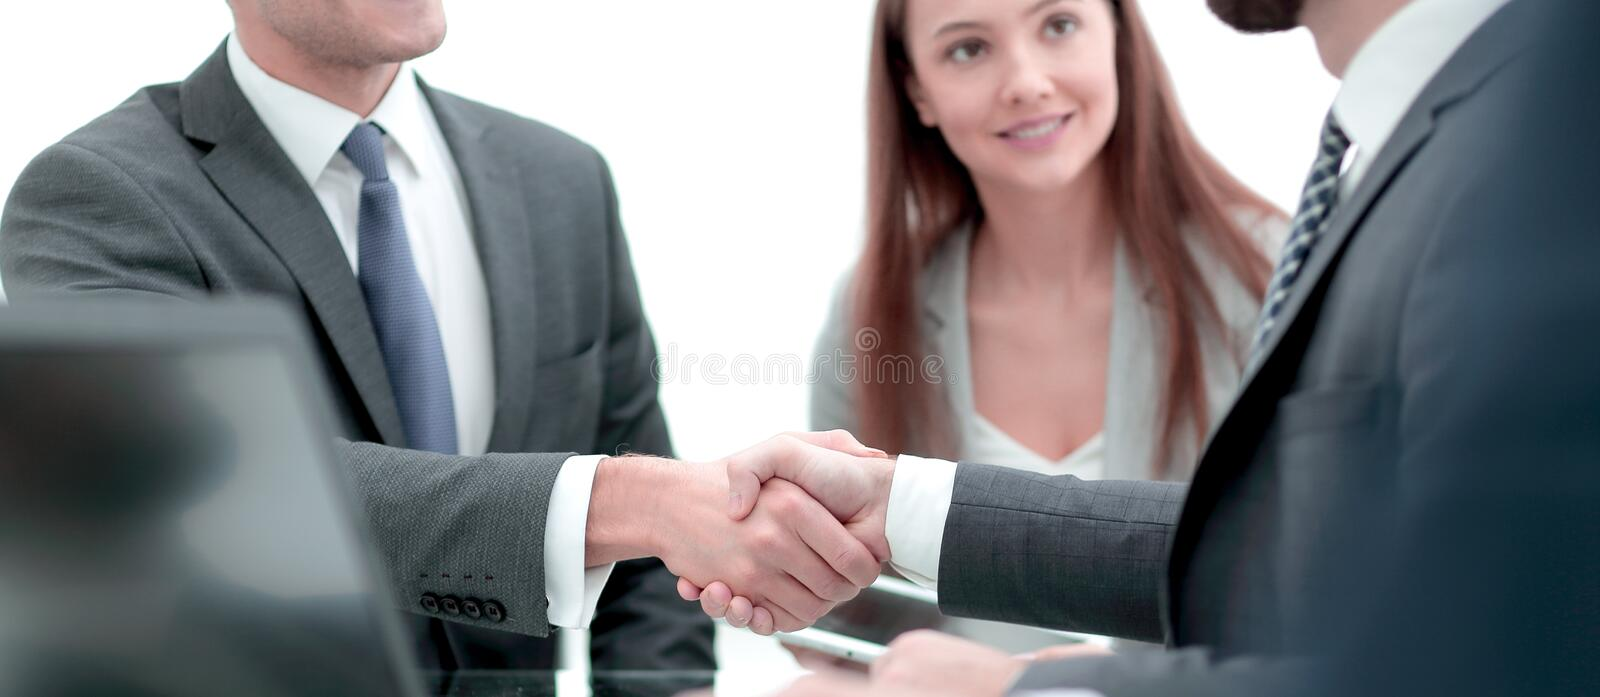 Close-up of business handshake.panoramic photo royalty free stock photography